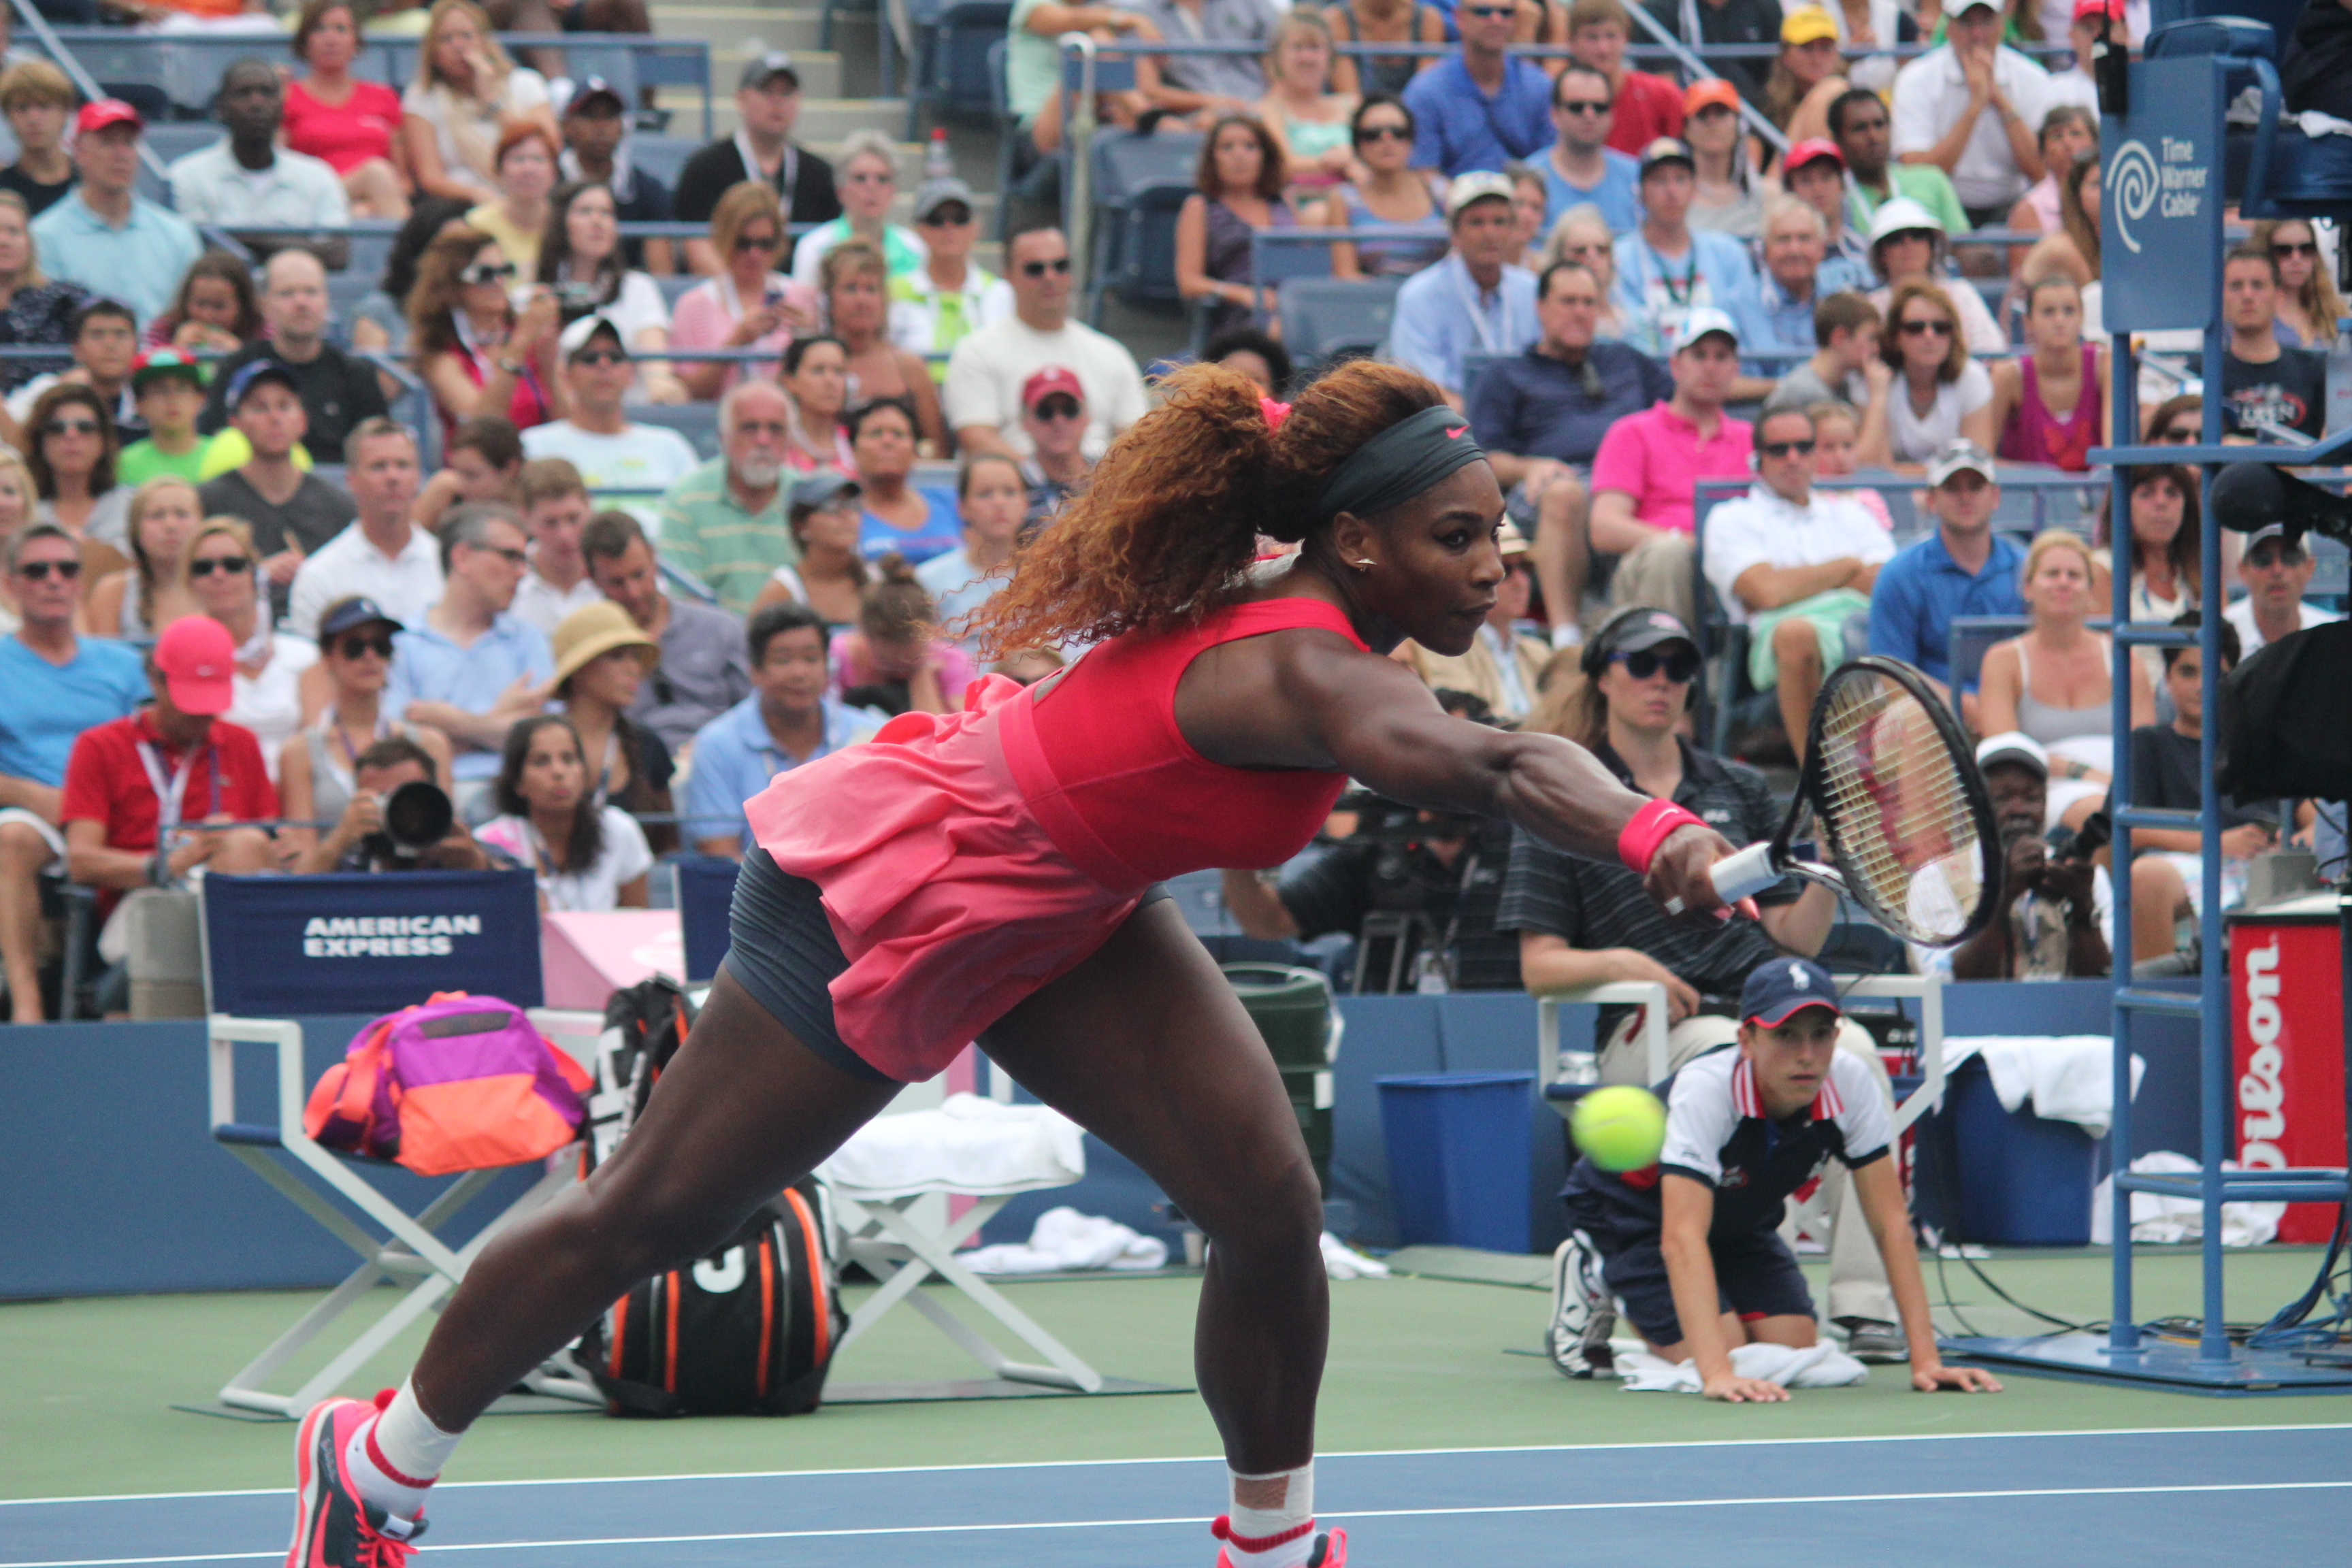 2014 Wimbledon Preview Serena Looks To Rebound At Third Slam Of The Circuit Breakers Service Billie Girl Year